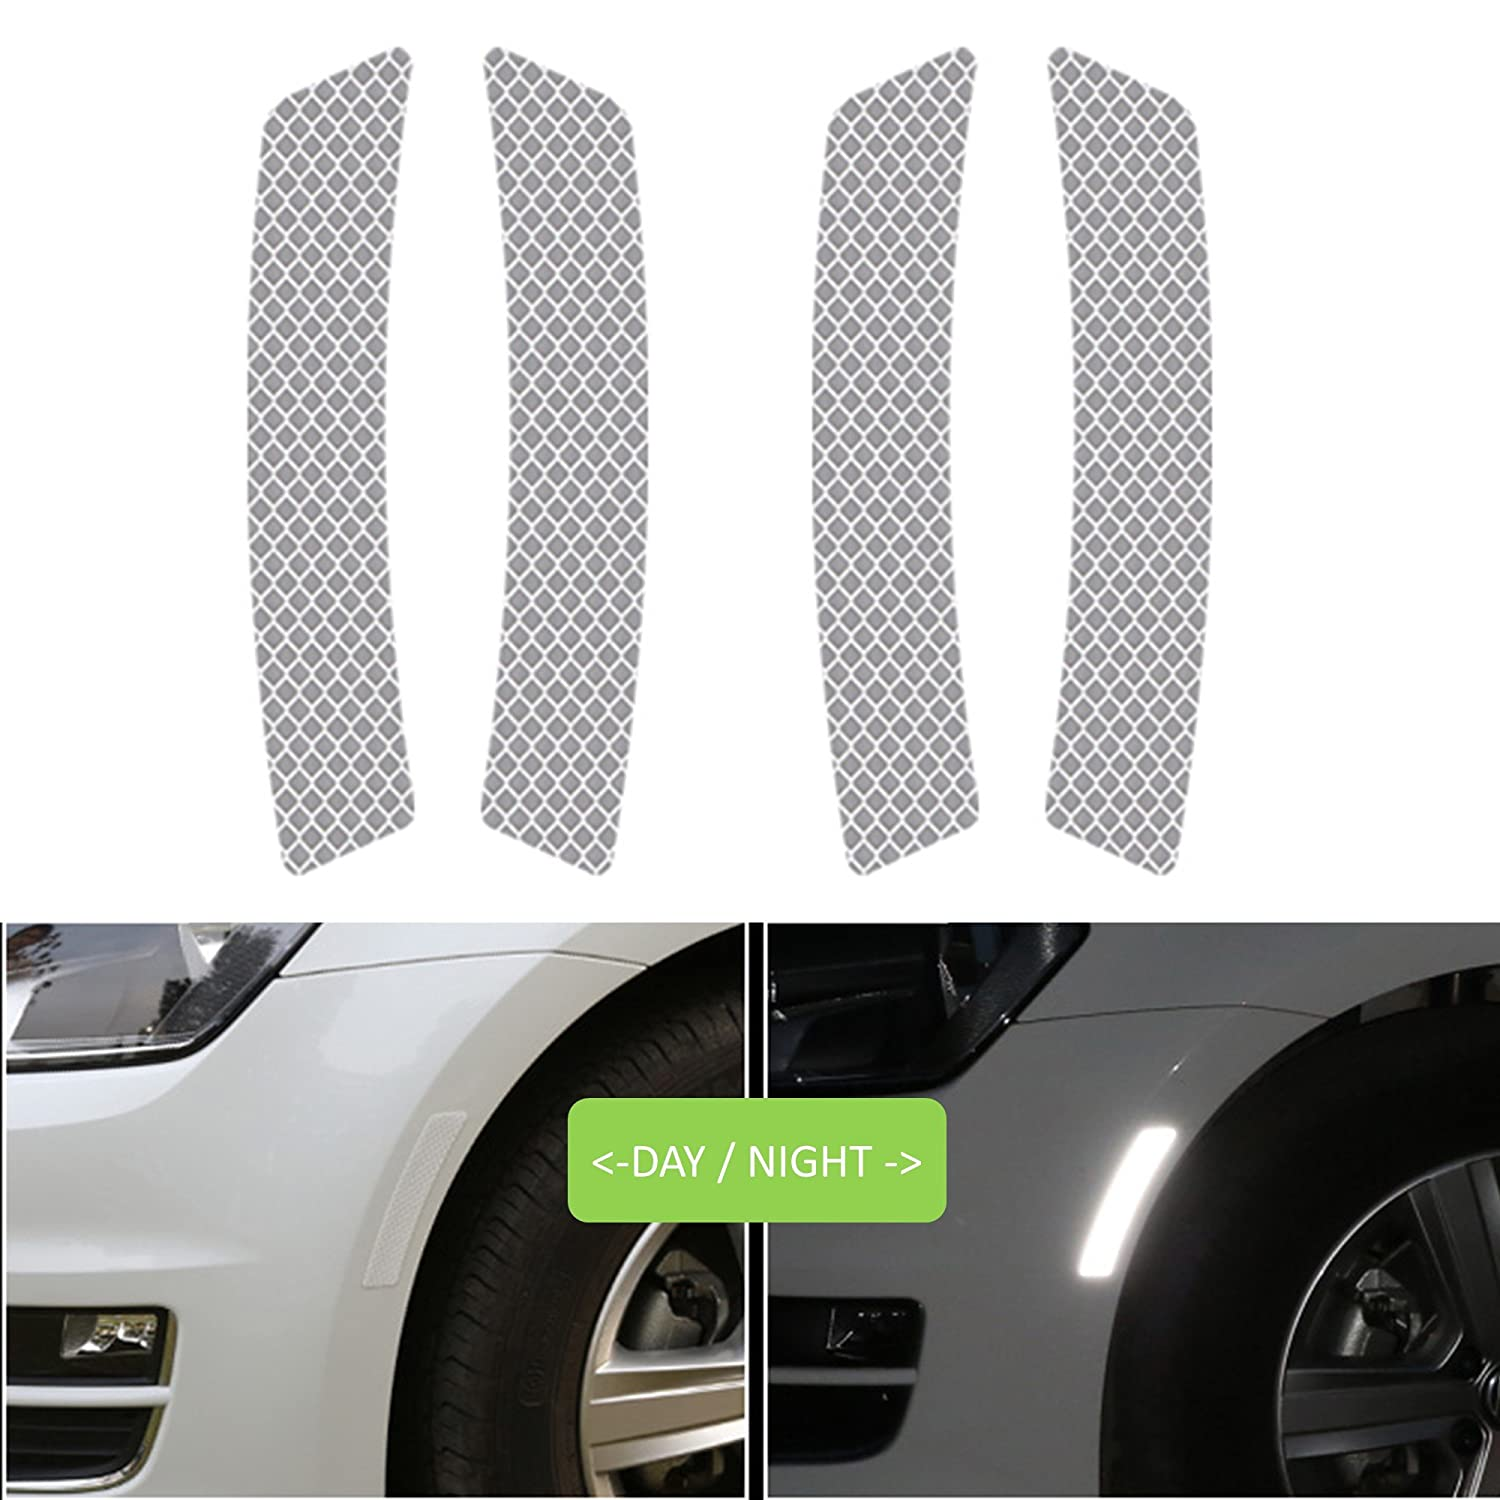 Reflective tape caution warning safety reflector strips sticker fluorescent waterproof reflective car decals for automobile car pickup truck suv rv boat